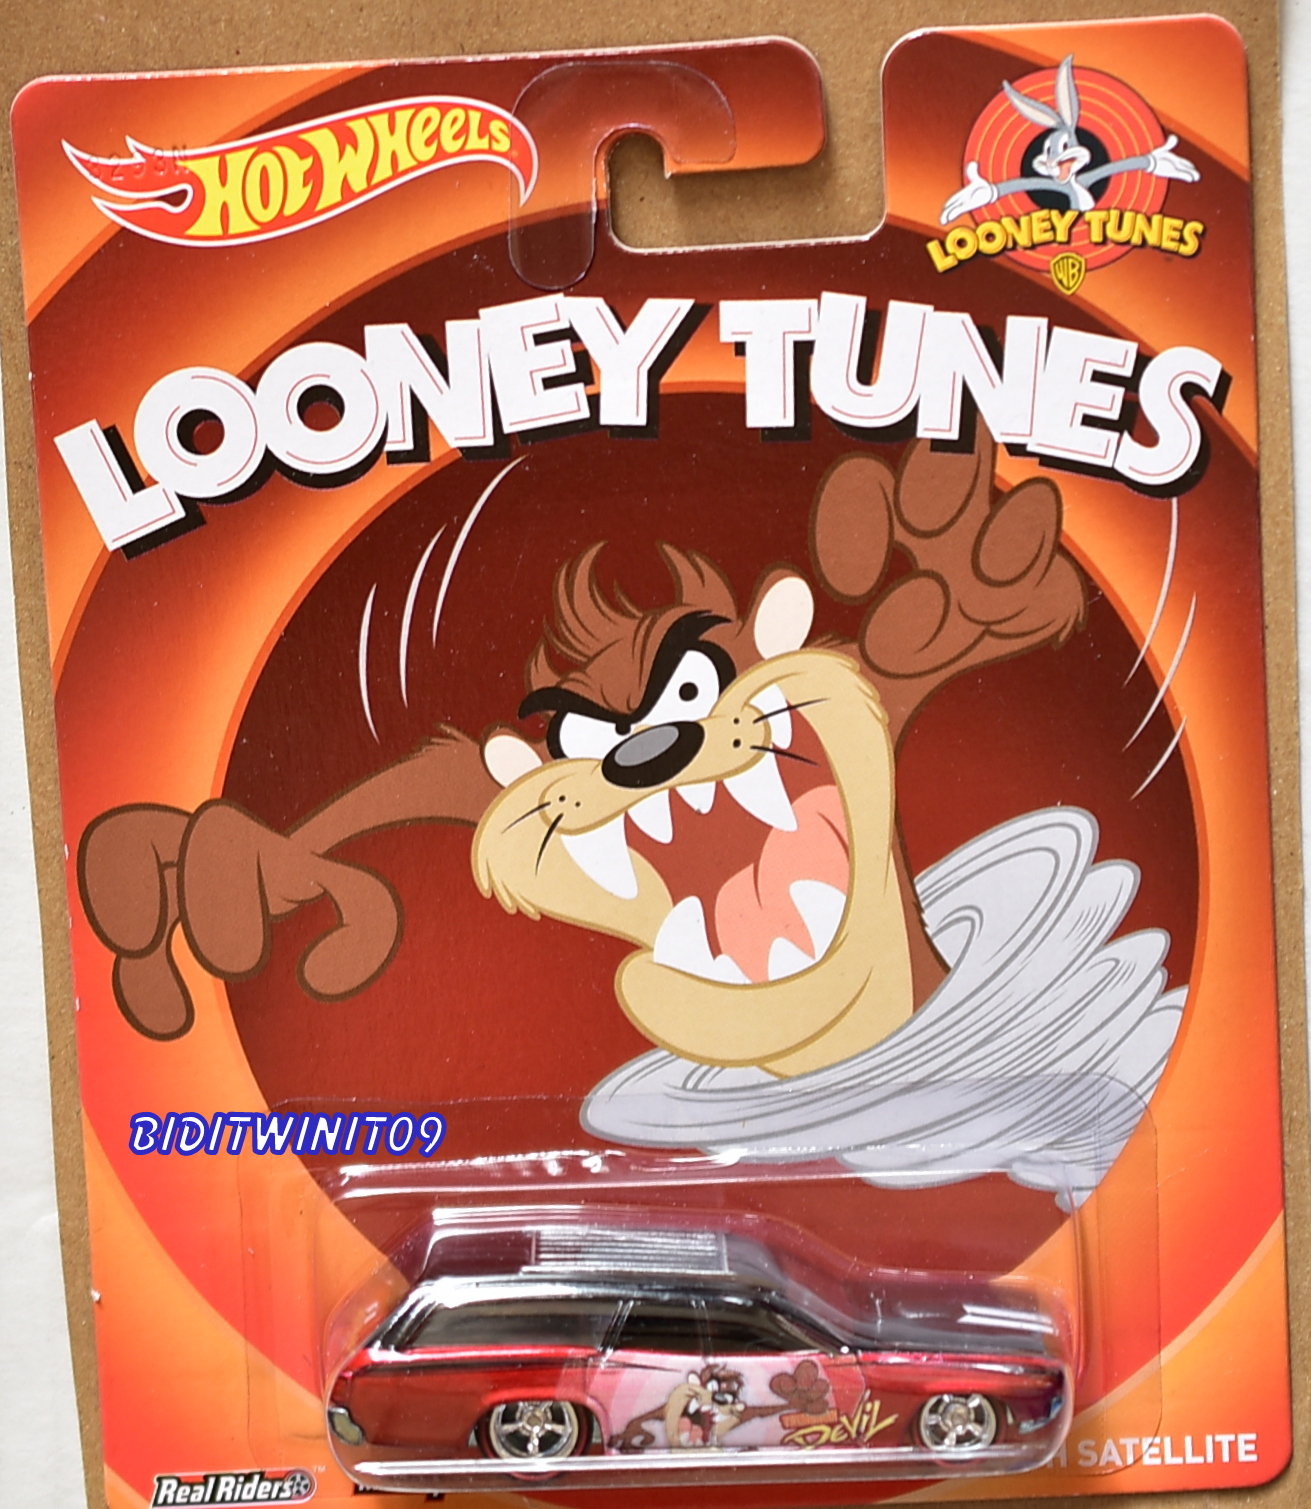 HOT WHEELS POP CULTURE LOONEY TUNES '71 PLYMOUTH SATELLITE E+